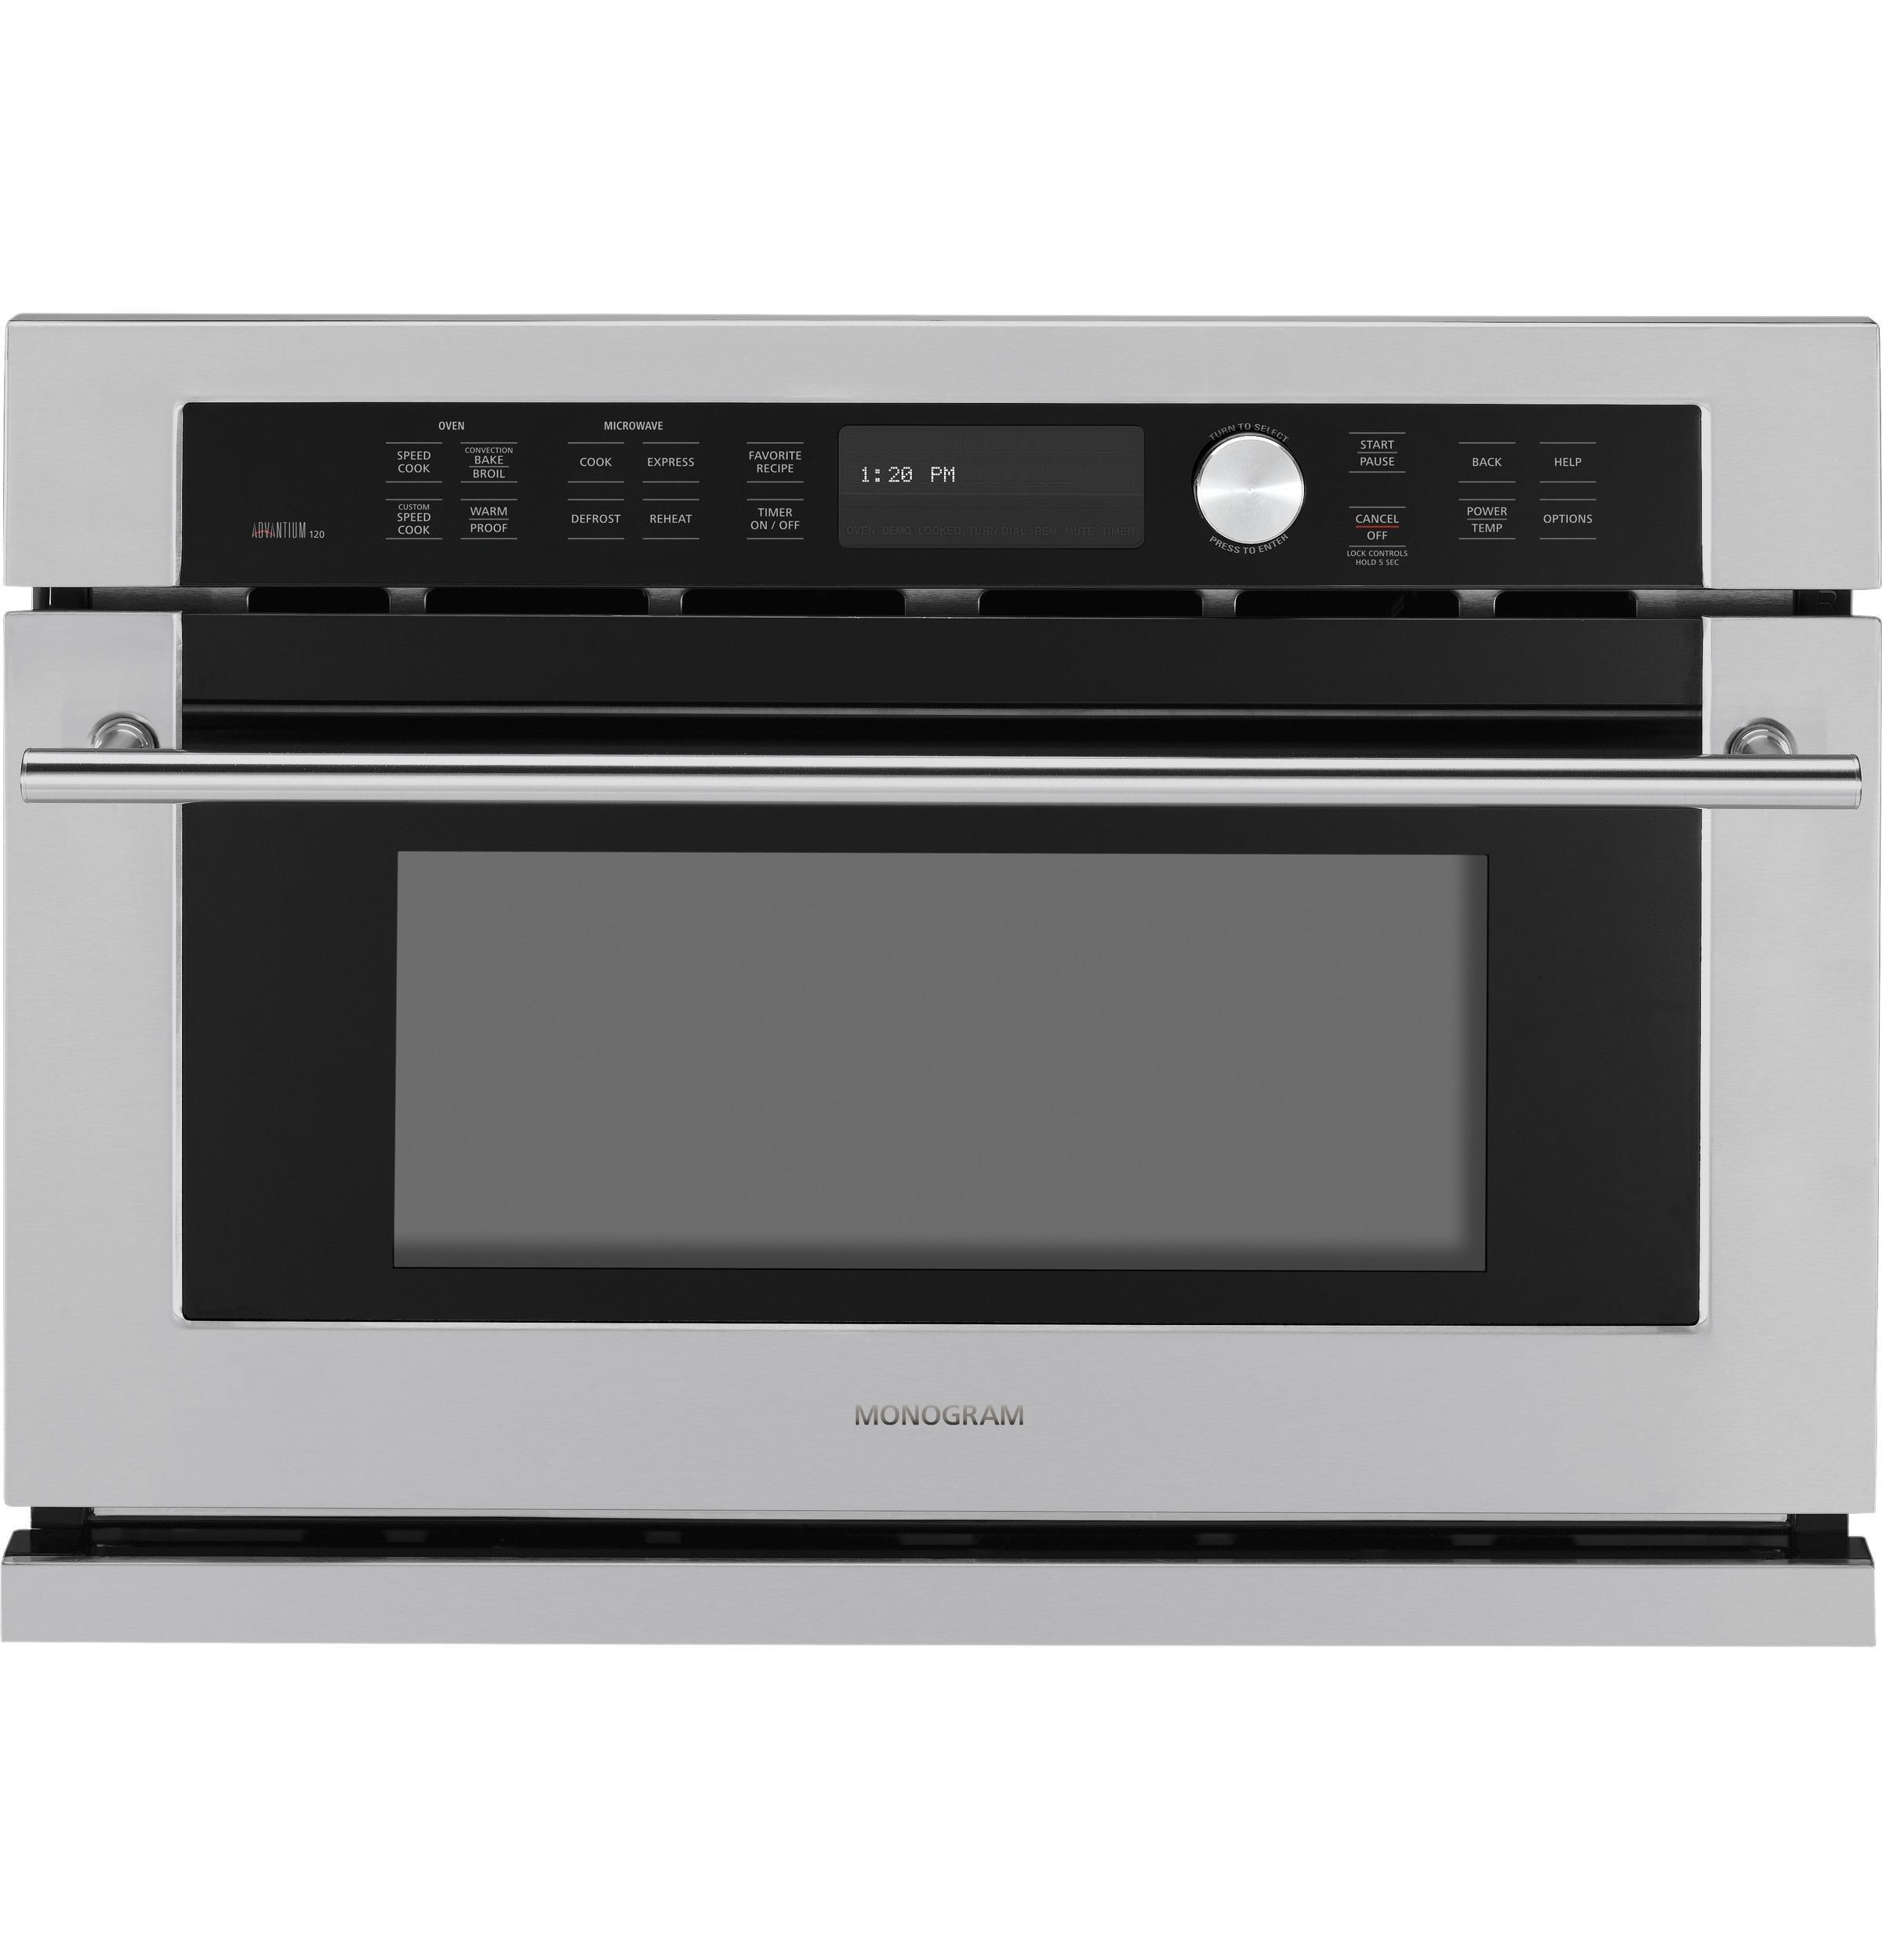 Ge Wall Oven Schematic Diagram. Electric Oven Wiring Diagram ... Ge Monogram Oven Wiring Diagram on